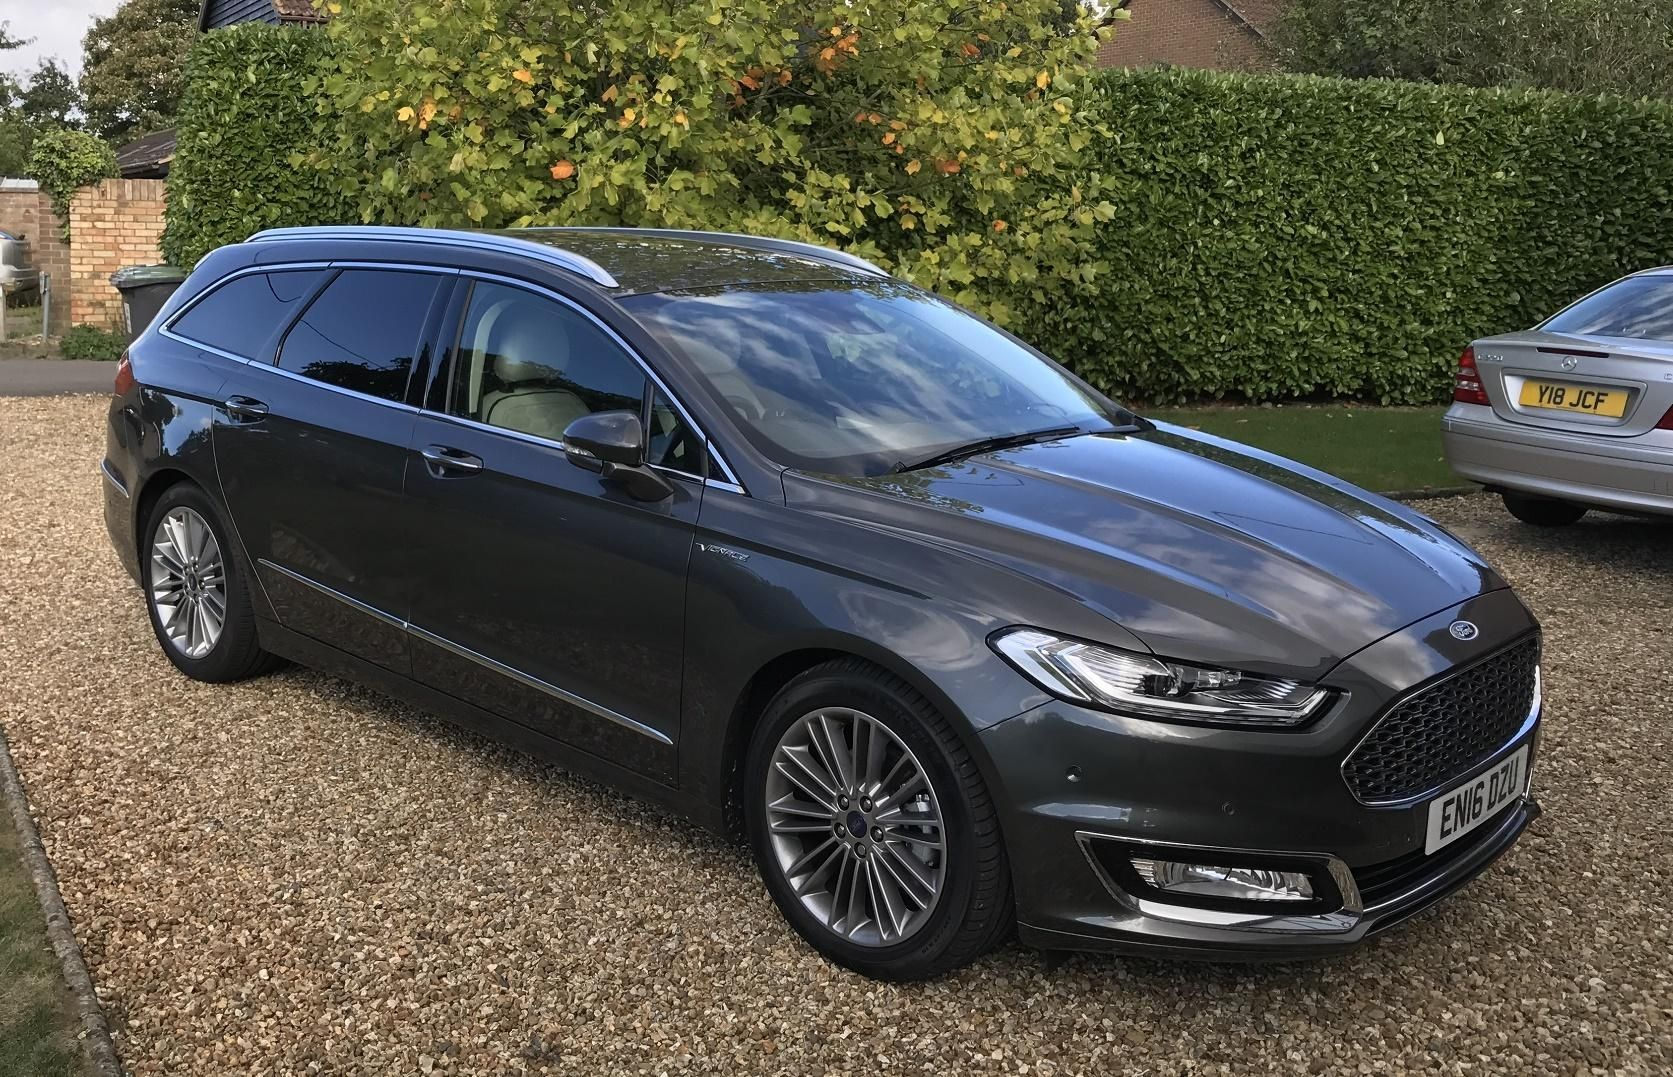 Ford Mondeo Vignale 2 0 Tdci Estate Review Business Car Manager